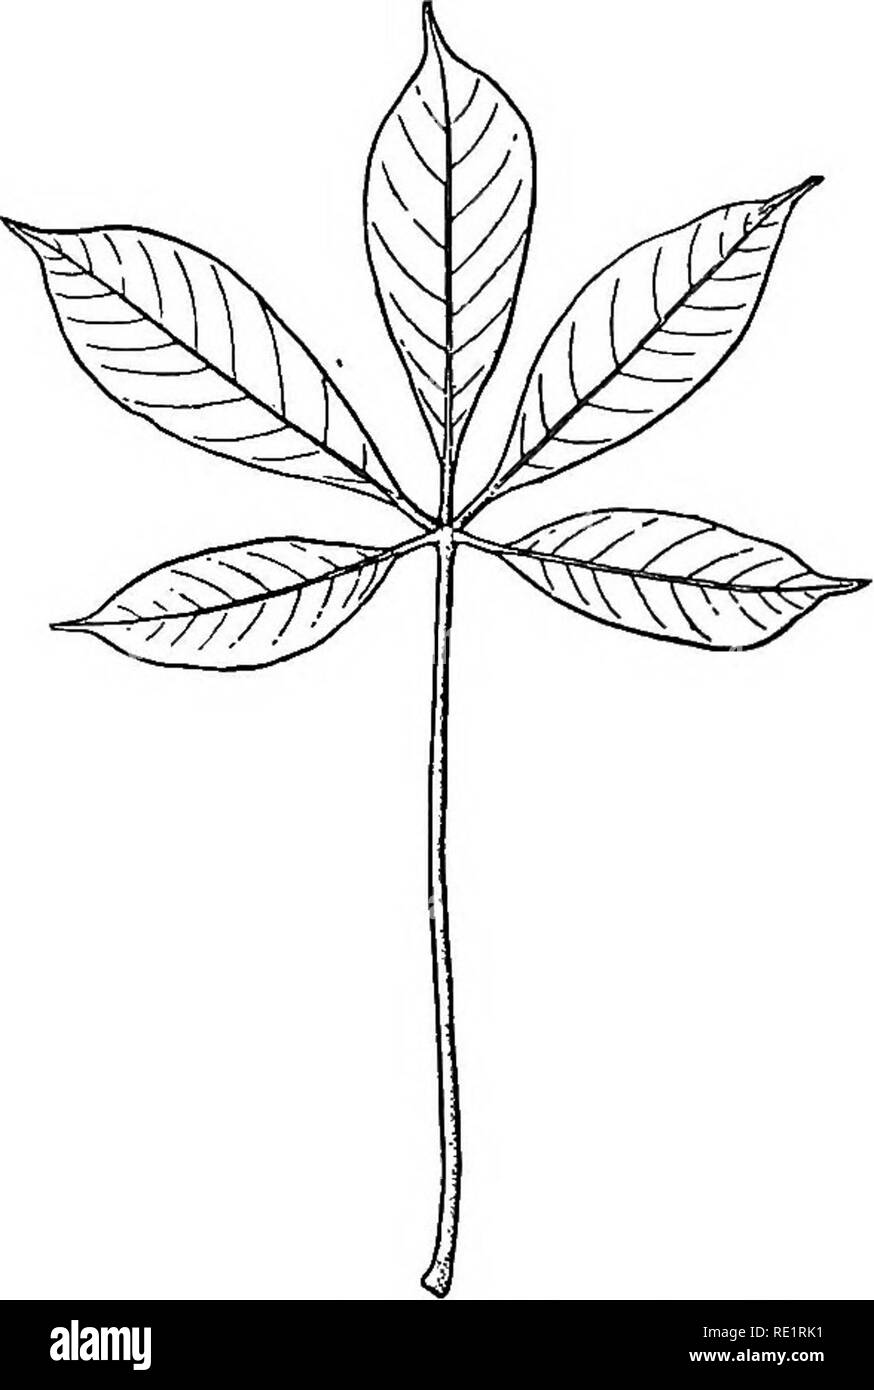 . A manual of Indian botany. Botany. THE LEAF 43 pentaphylla), yellow-flowered hurh-hurhe {Cleome viscosa), tikta-shag {Cratceva), &c. The leaflets of compound leaves are described in the same terms as are used in describing simple leaves. Ternate leaves are either pinnately ternate or palmately ternate, according as the leaflets are petiolate or sessile or subsessile. The petiole is usually cylindric or semi - cylindric in form, with often a more or less grooved upper surface. In Orange and other plants of this family the petiole is winged and articulated to the blade. In some plants the  - Stock Image